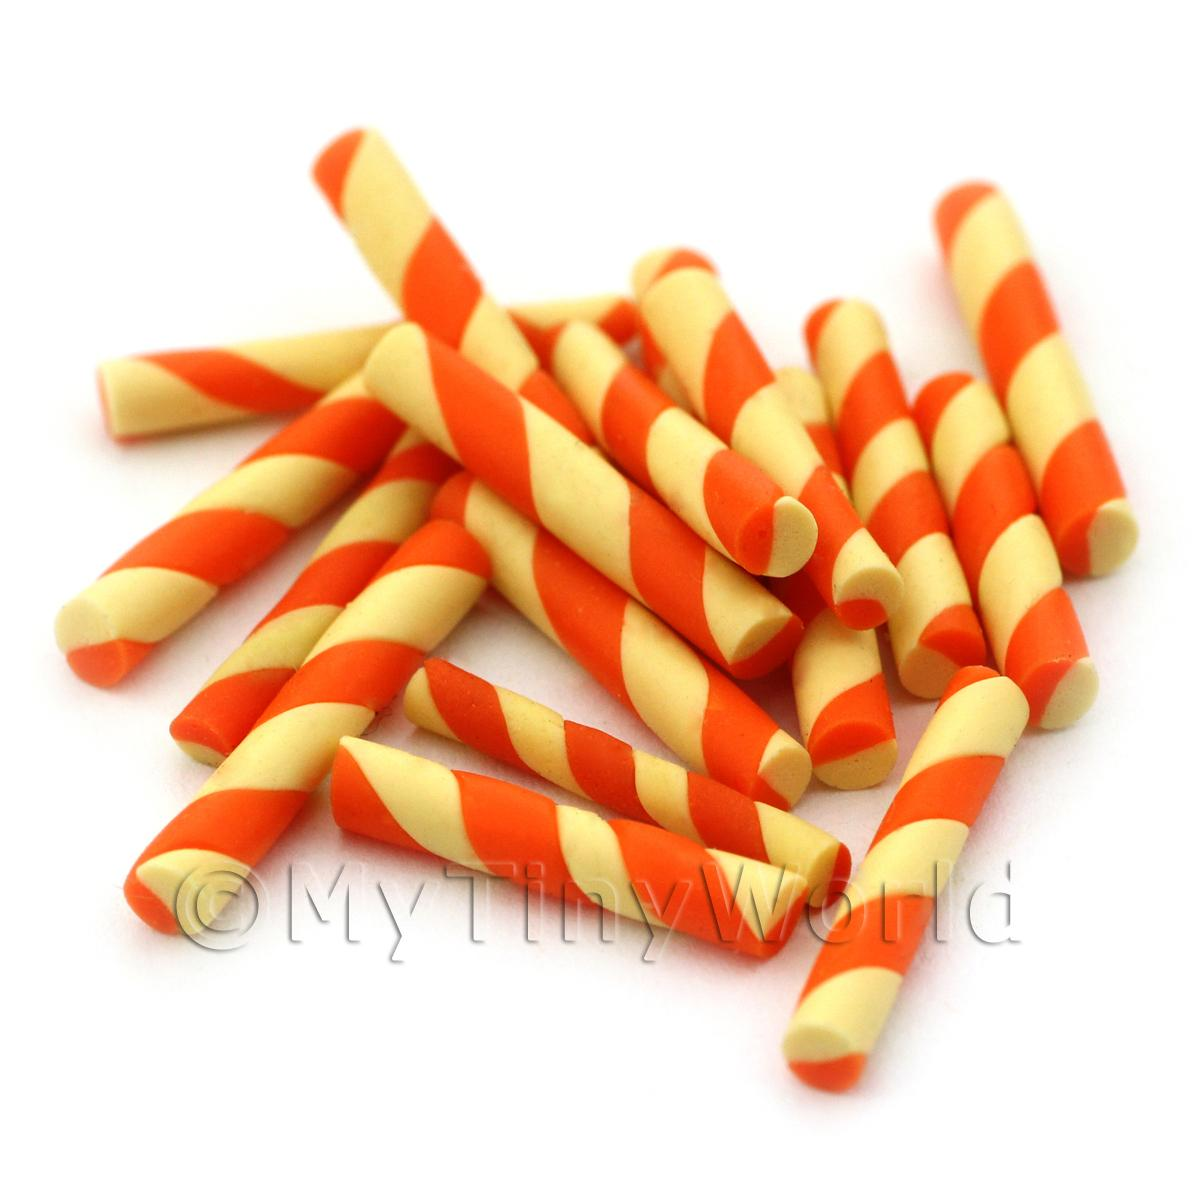 Dolls House Miniature Two Tone Swirly Wafer Straw